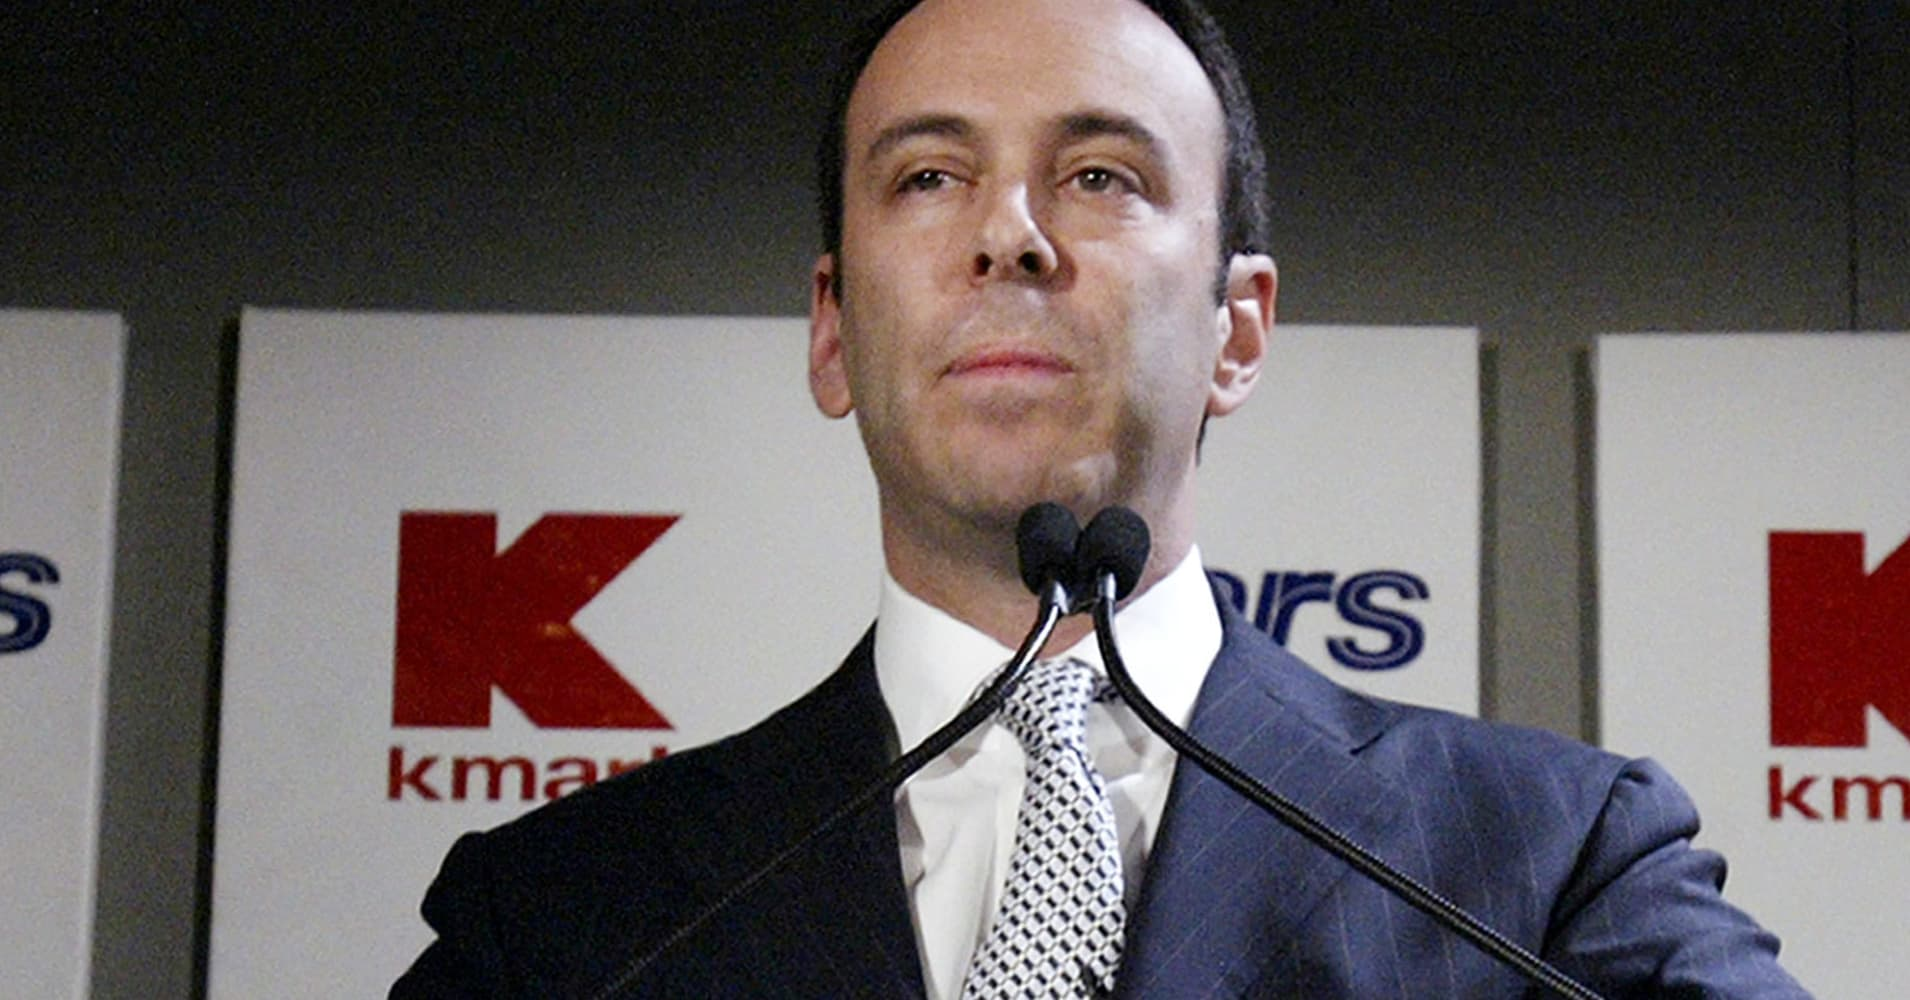 Eddie Lampert's deal to buy Sears granted approval, as retailer is given a second life